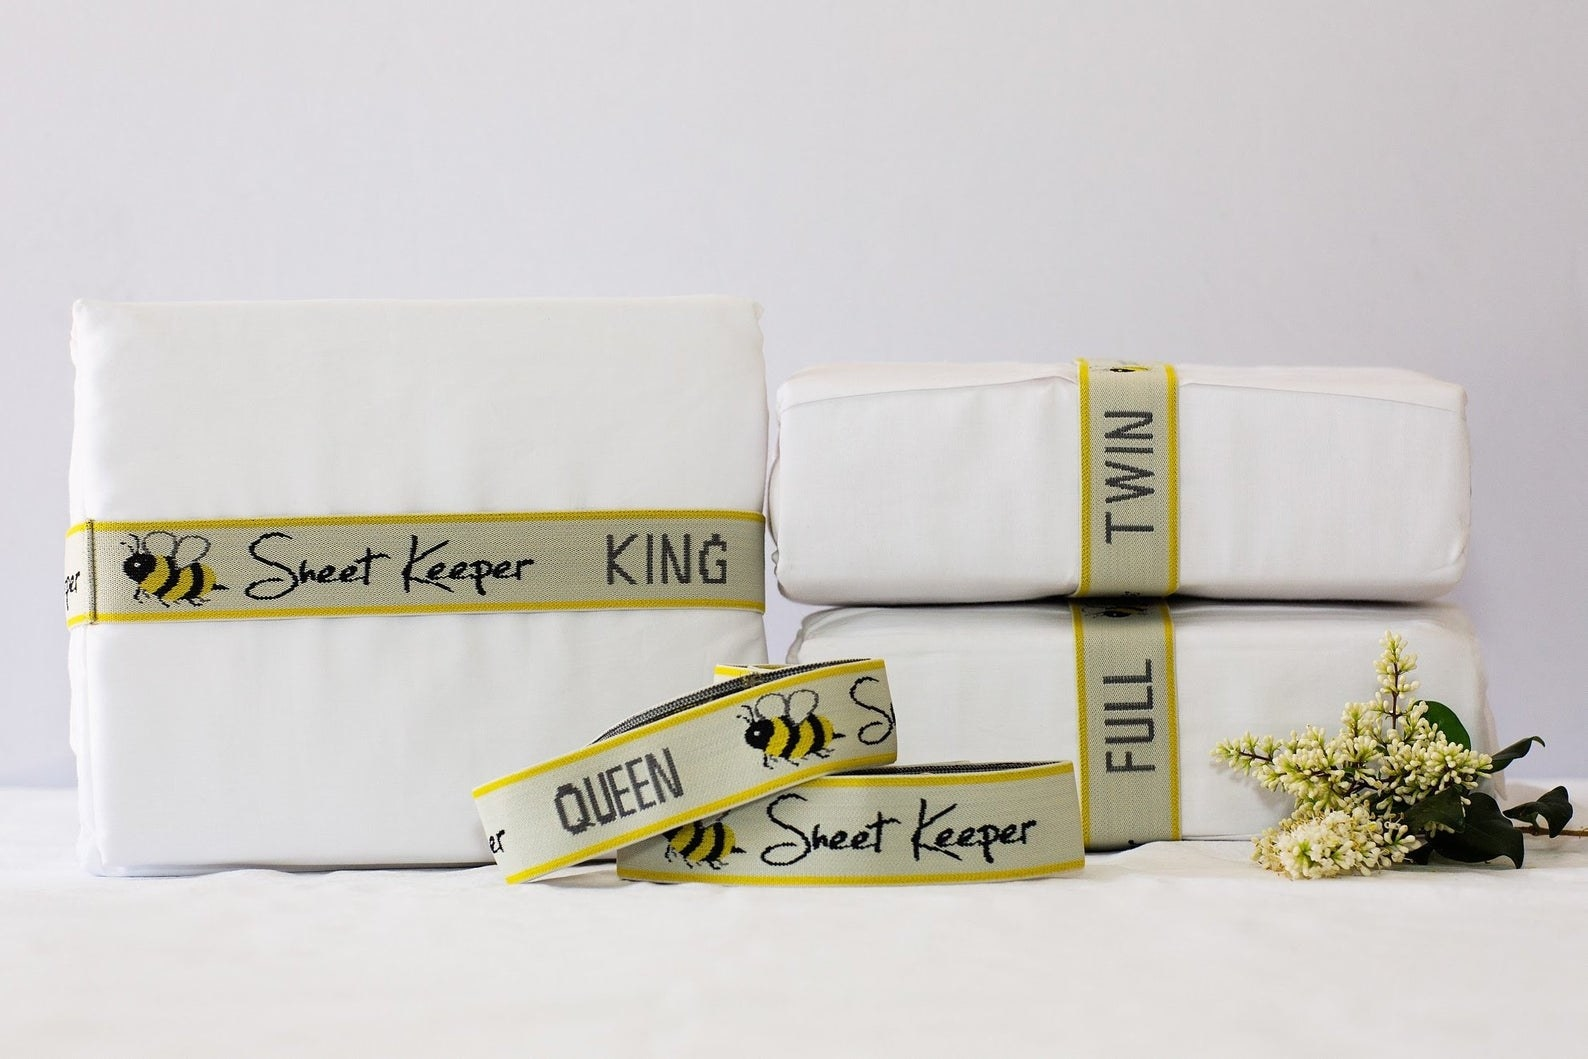 Three sheet sets with sheet keeper wrapped around